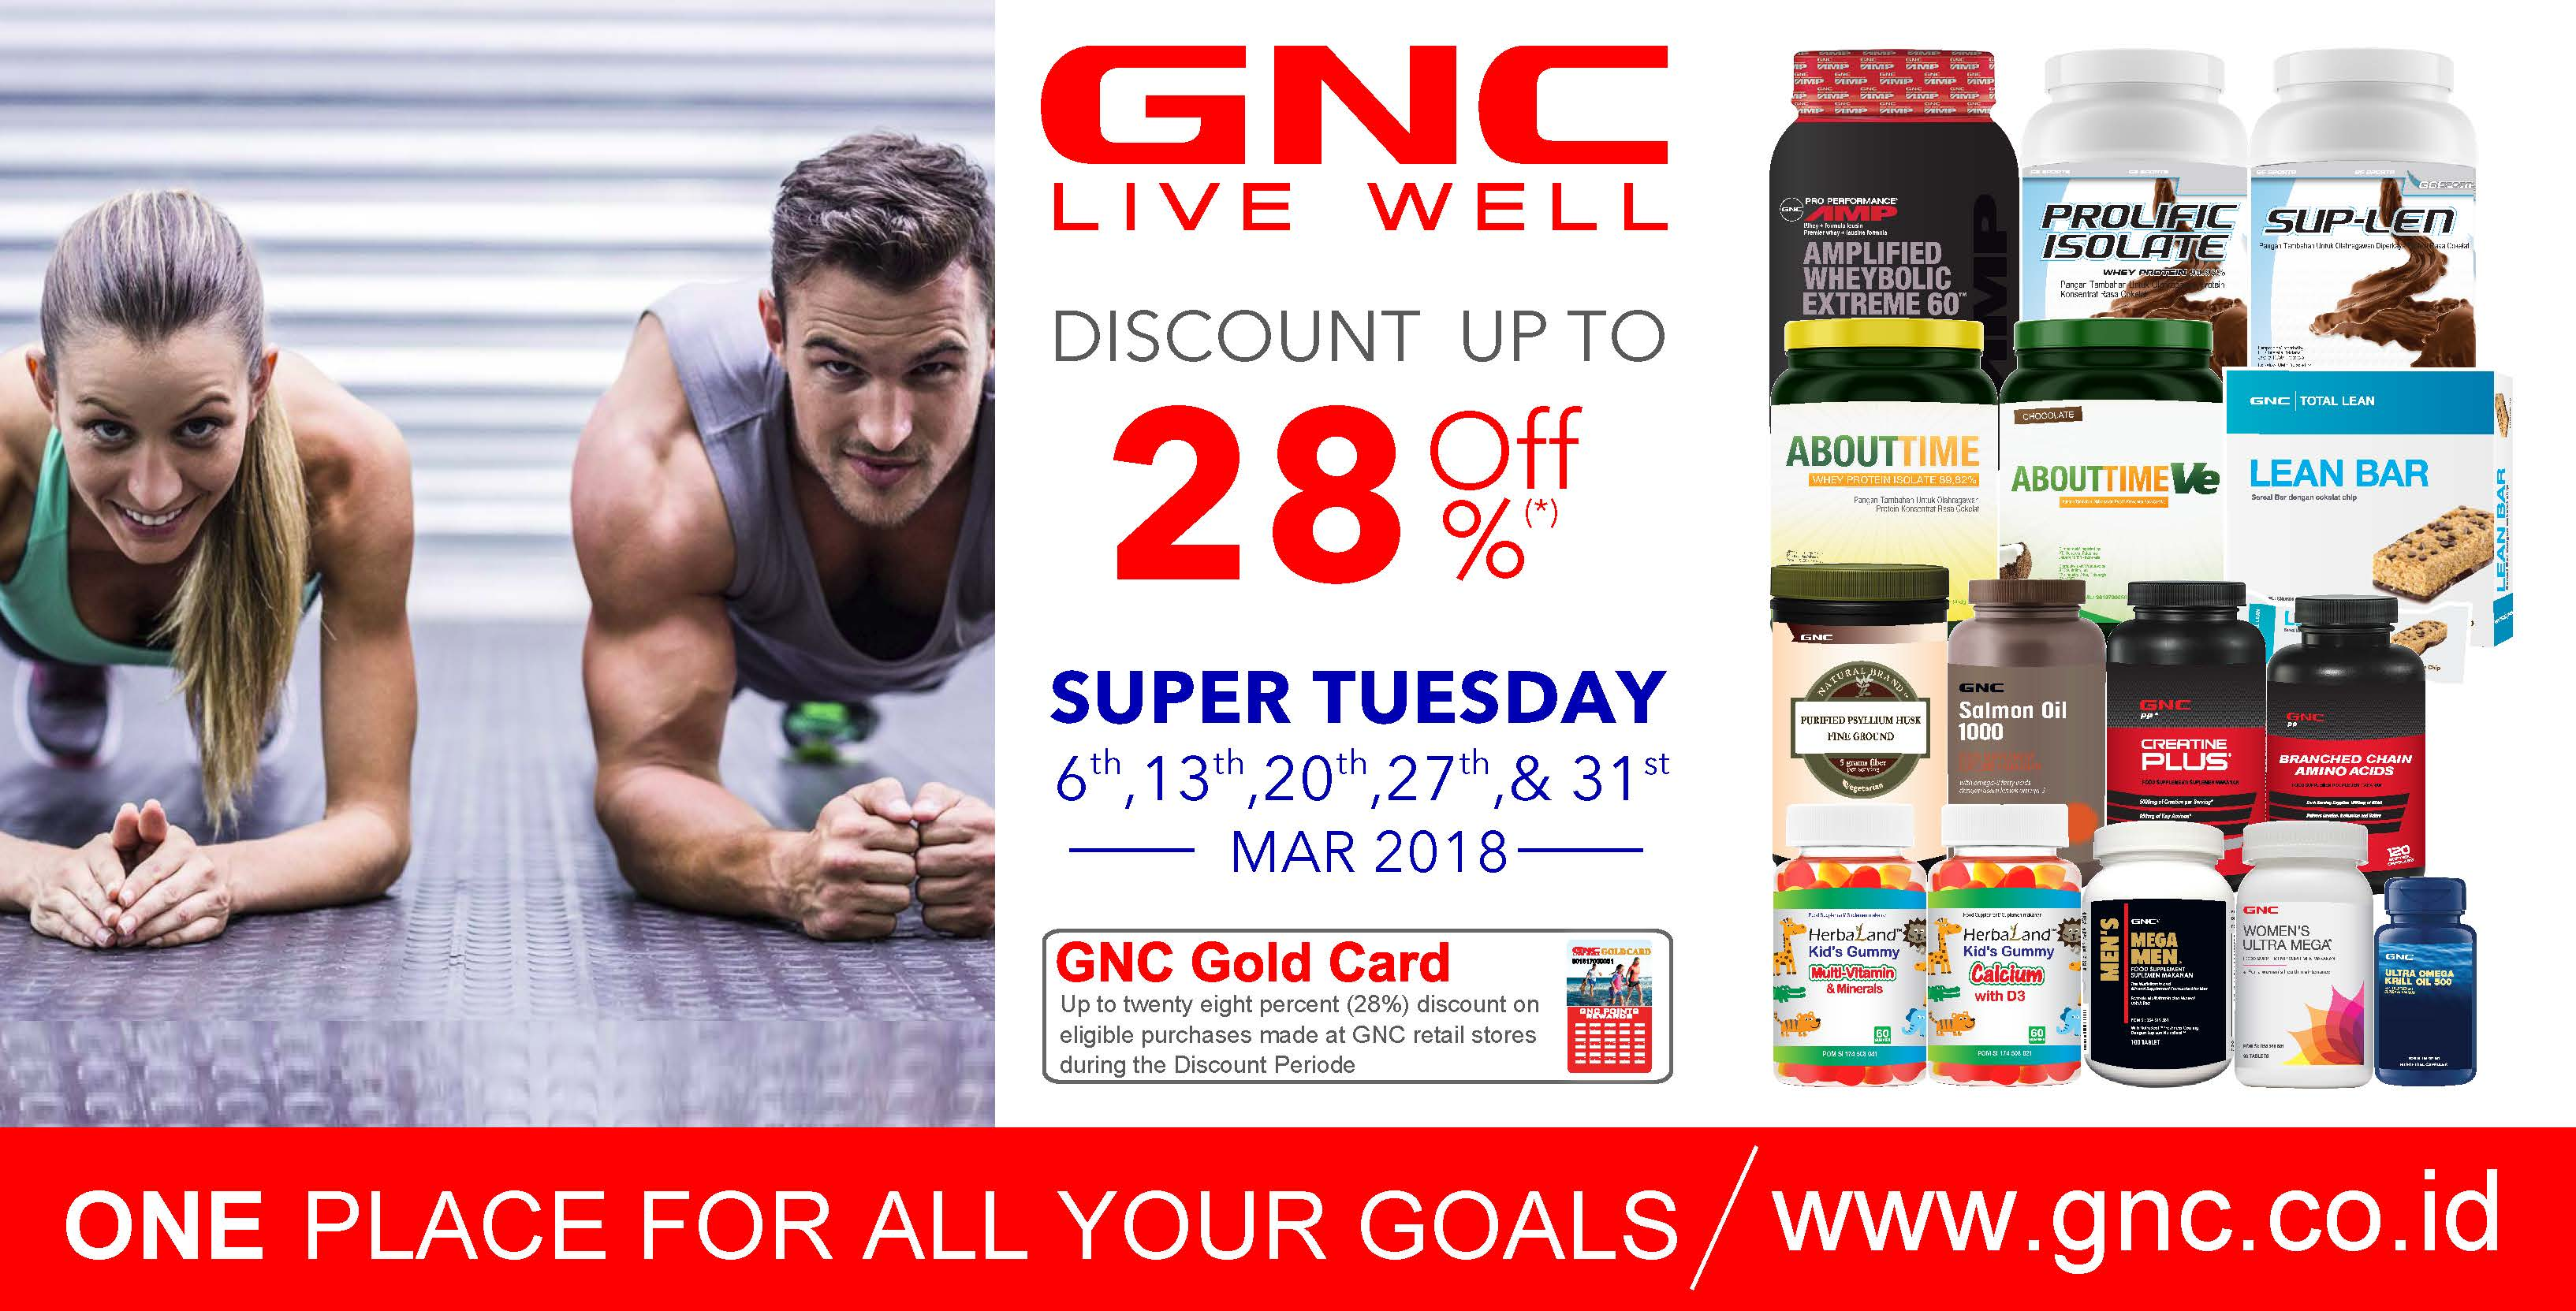 SUPER TUESDAY Disc. up to 20%